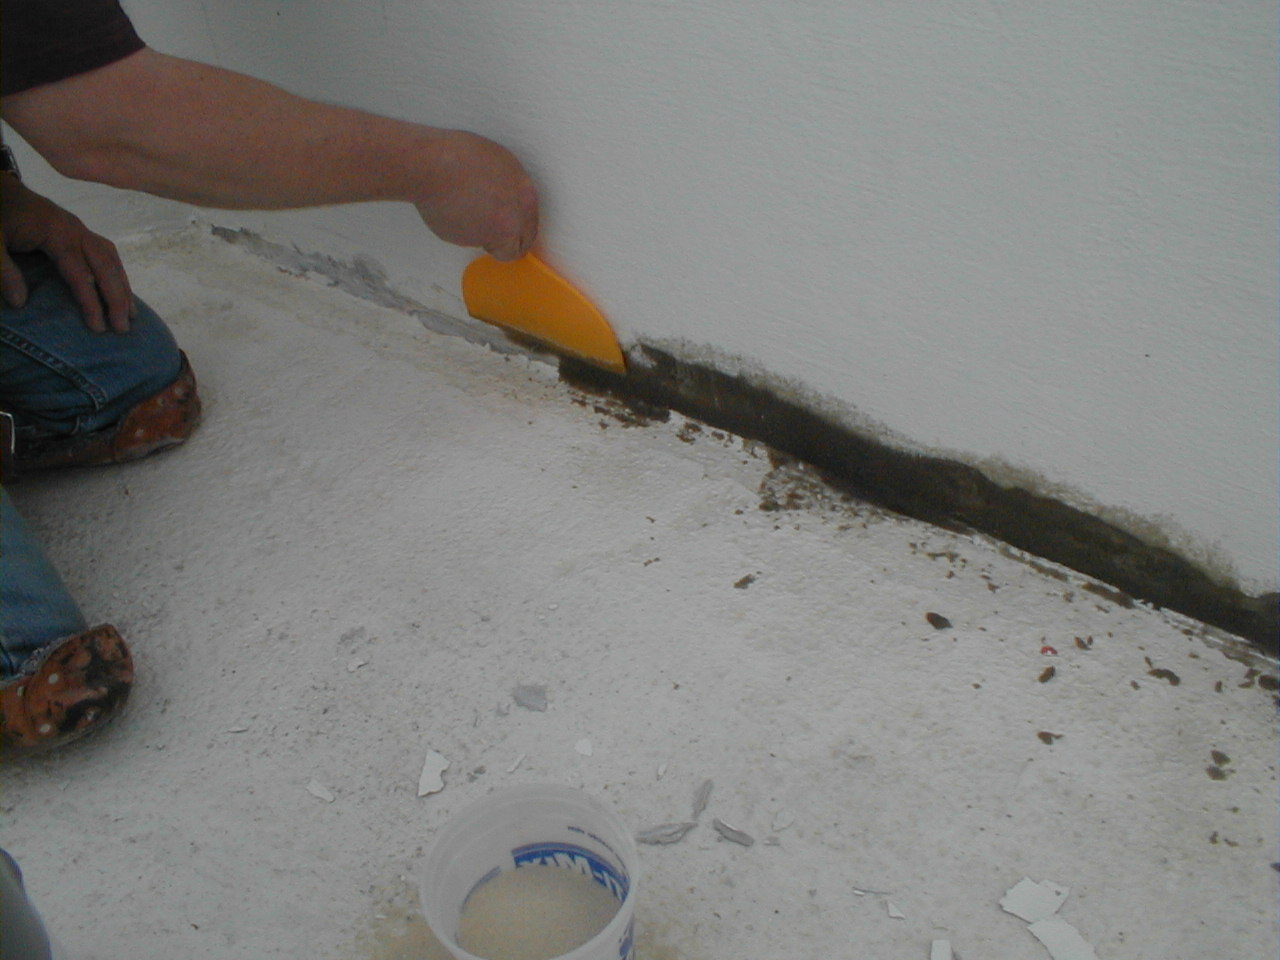 Pool repairs at the pool edge are made with Concrete Mender mixed with sand and troweled in place.